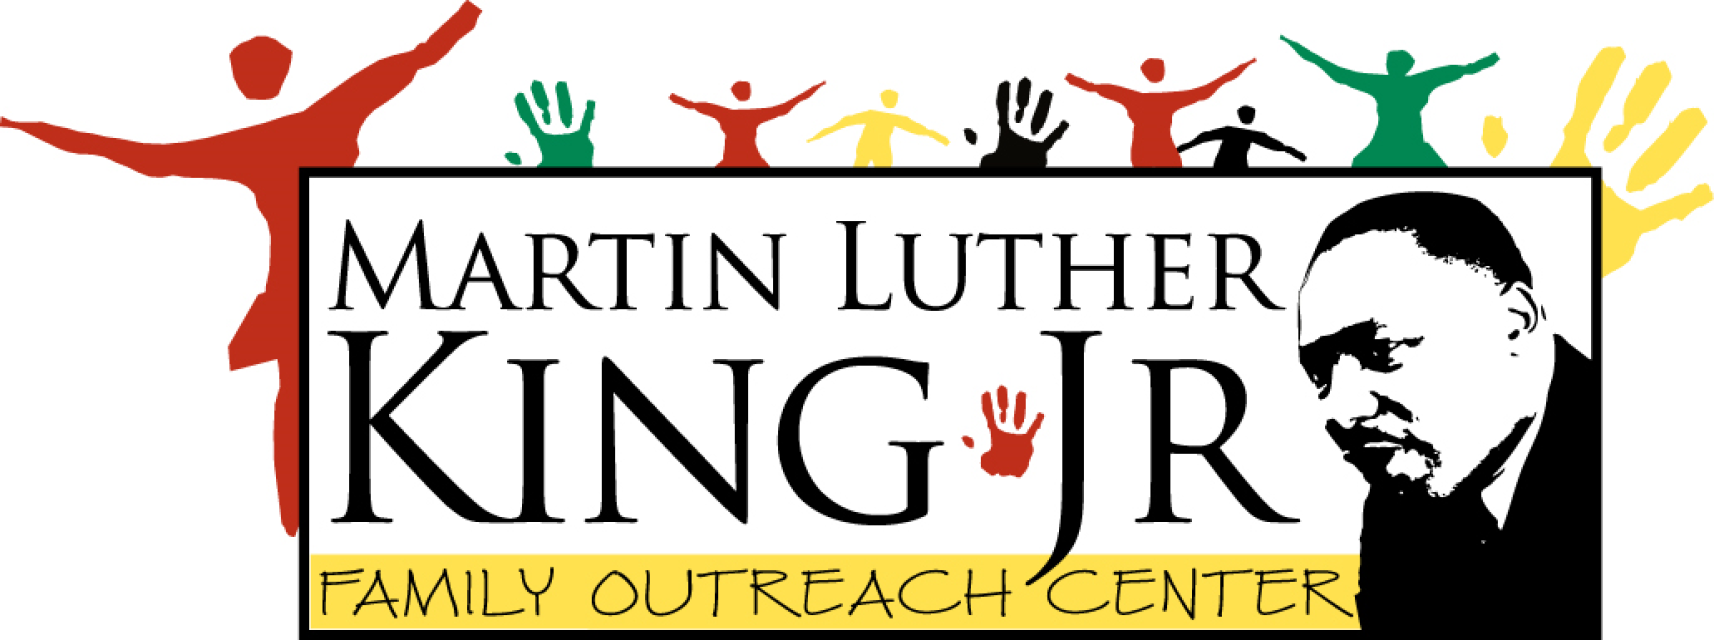 Dr. Martin Luther King Jr. Community Center